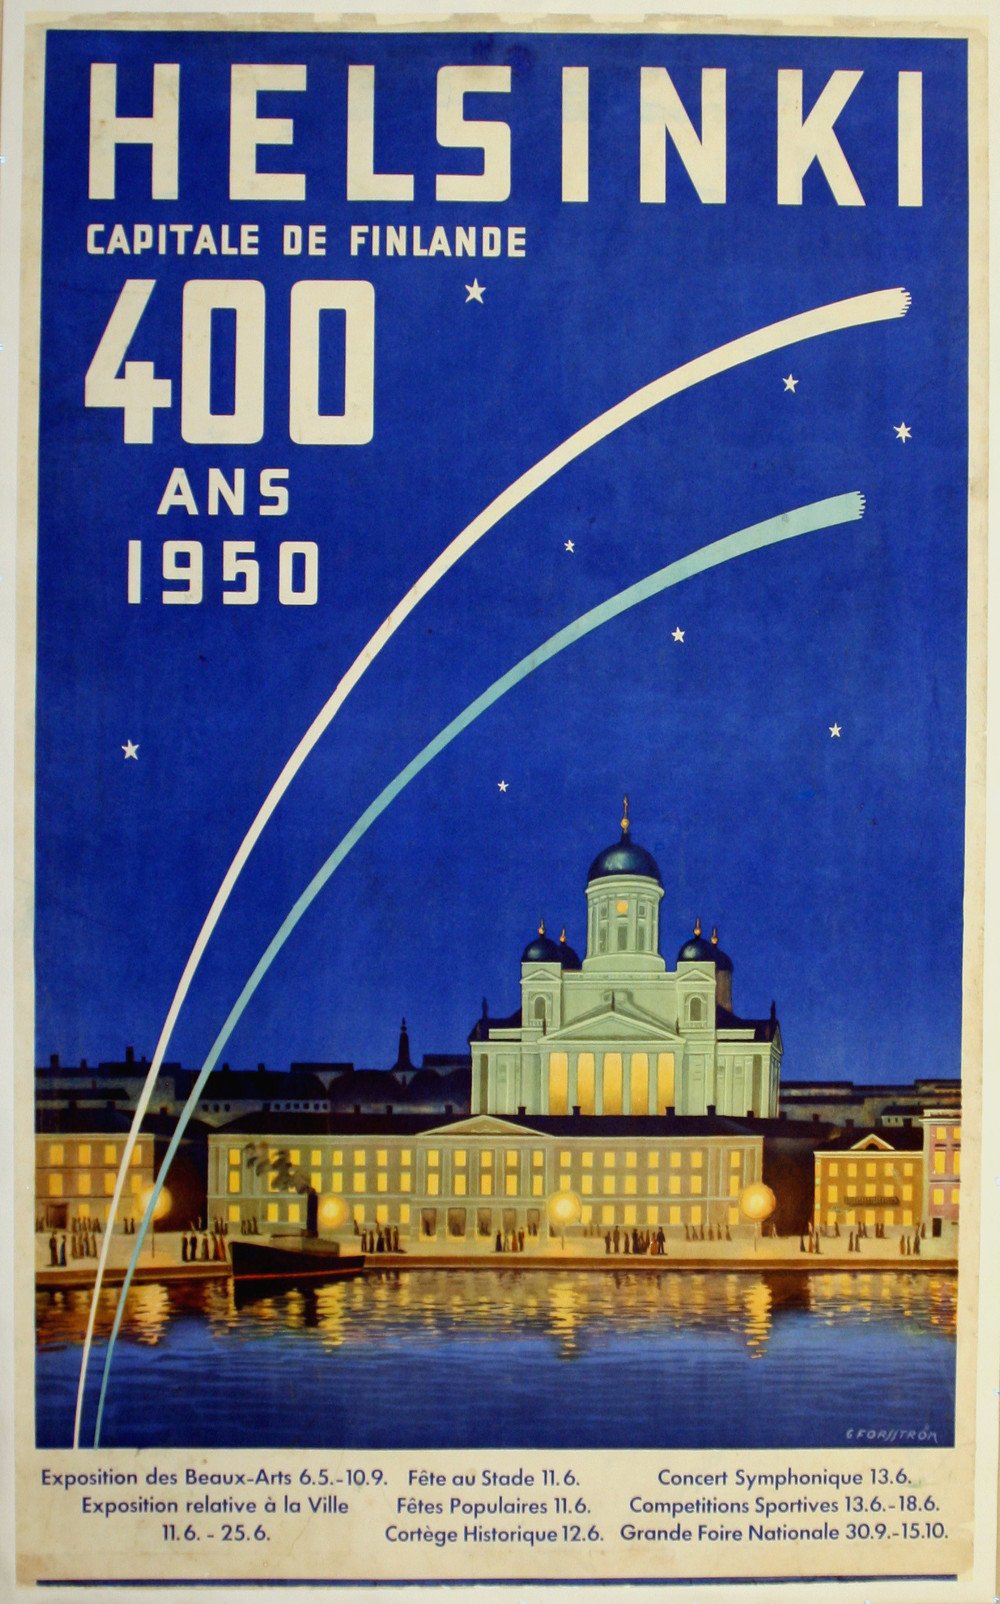 travel-poster-helsinki-finland - Copy.jpg